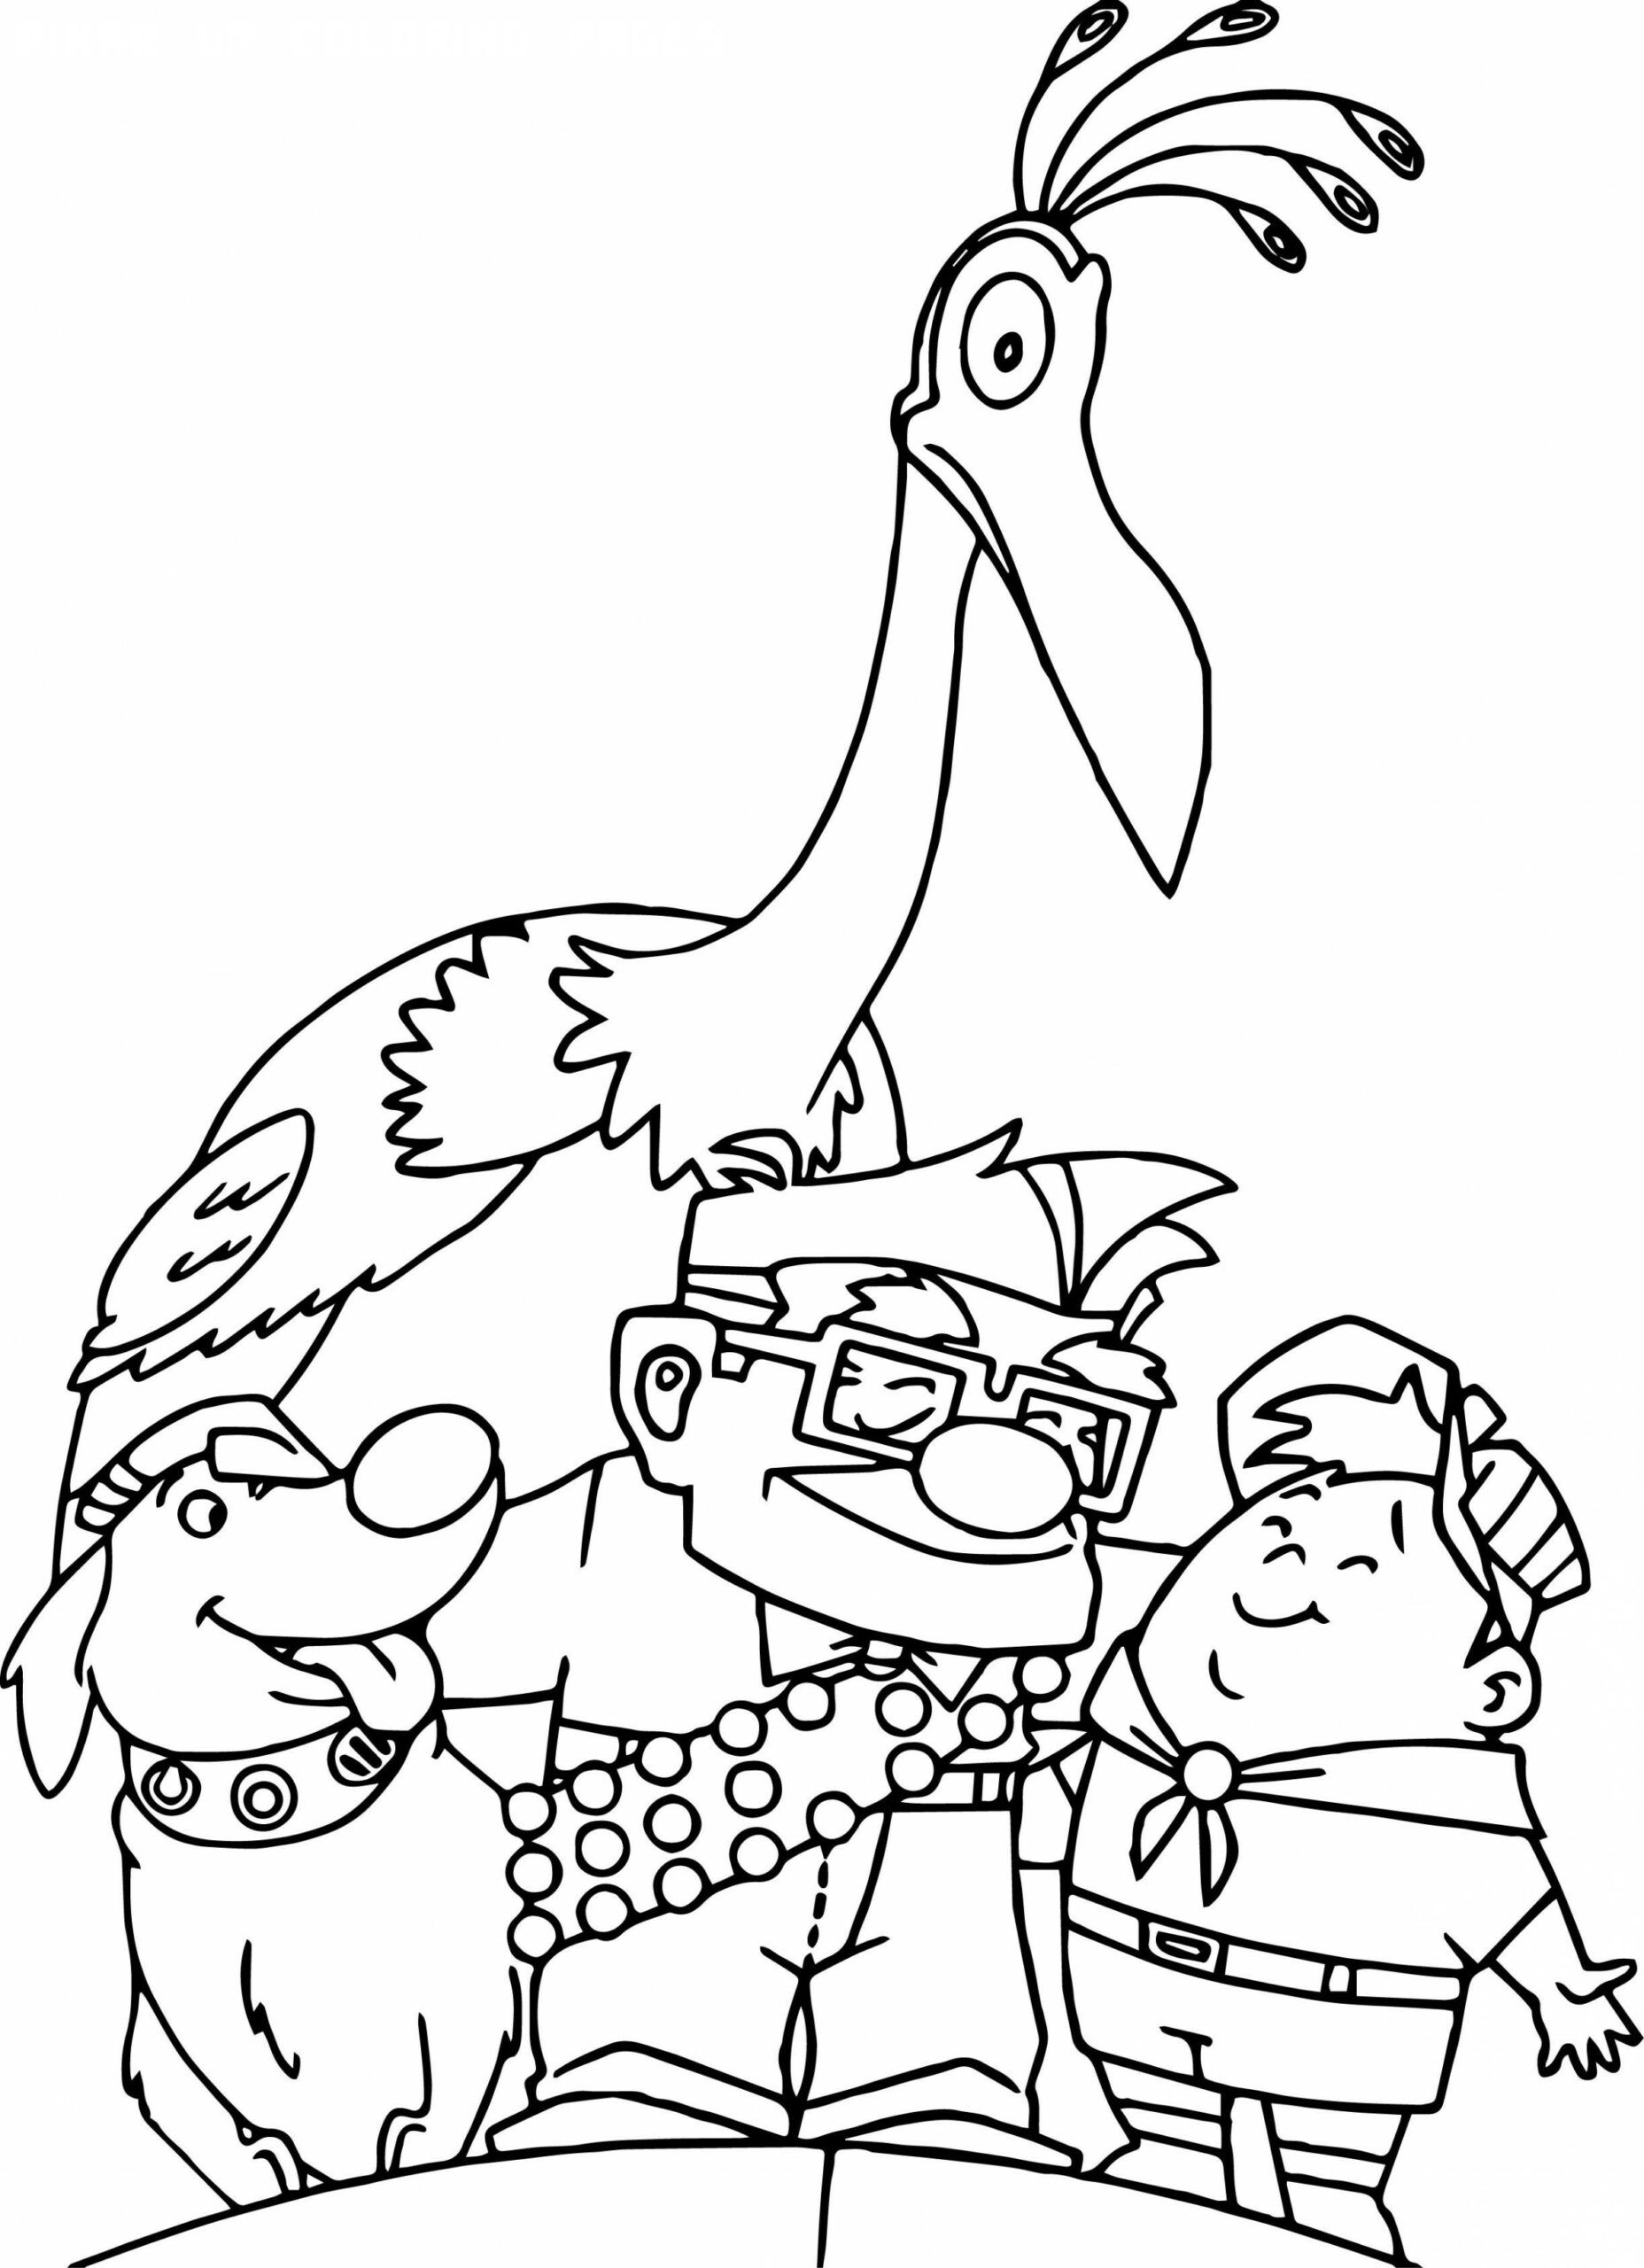 5 Pixar Up Coloring Pages in 5  Disney coloring pages, Free